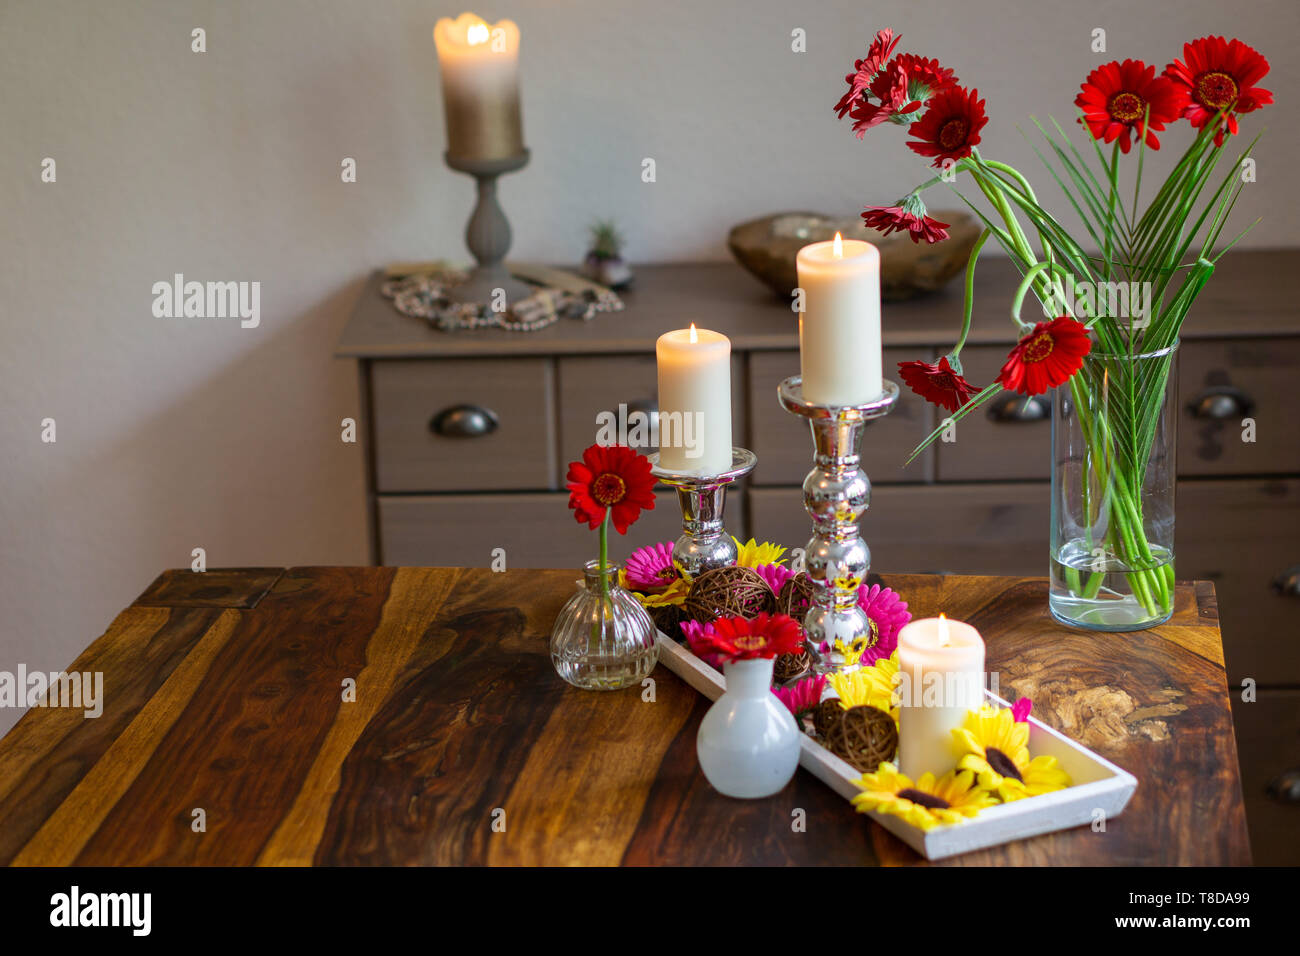 Decoration with candles on a table Stock Photo